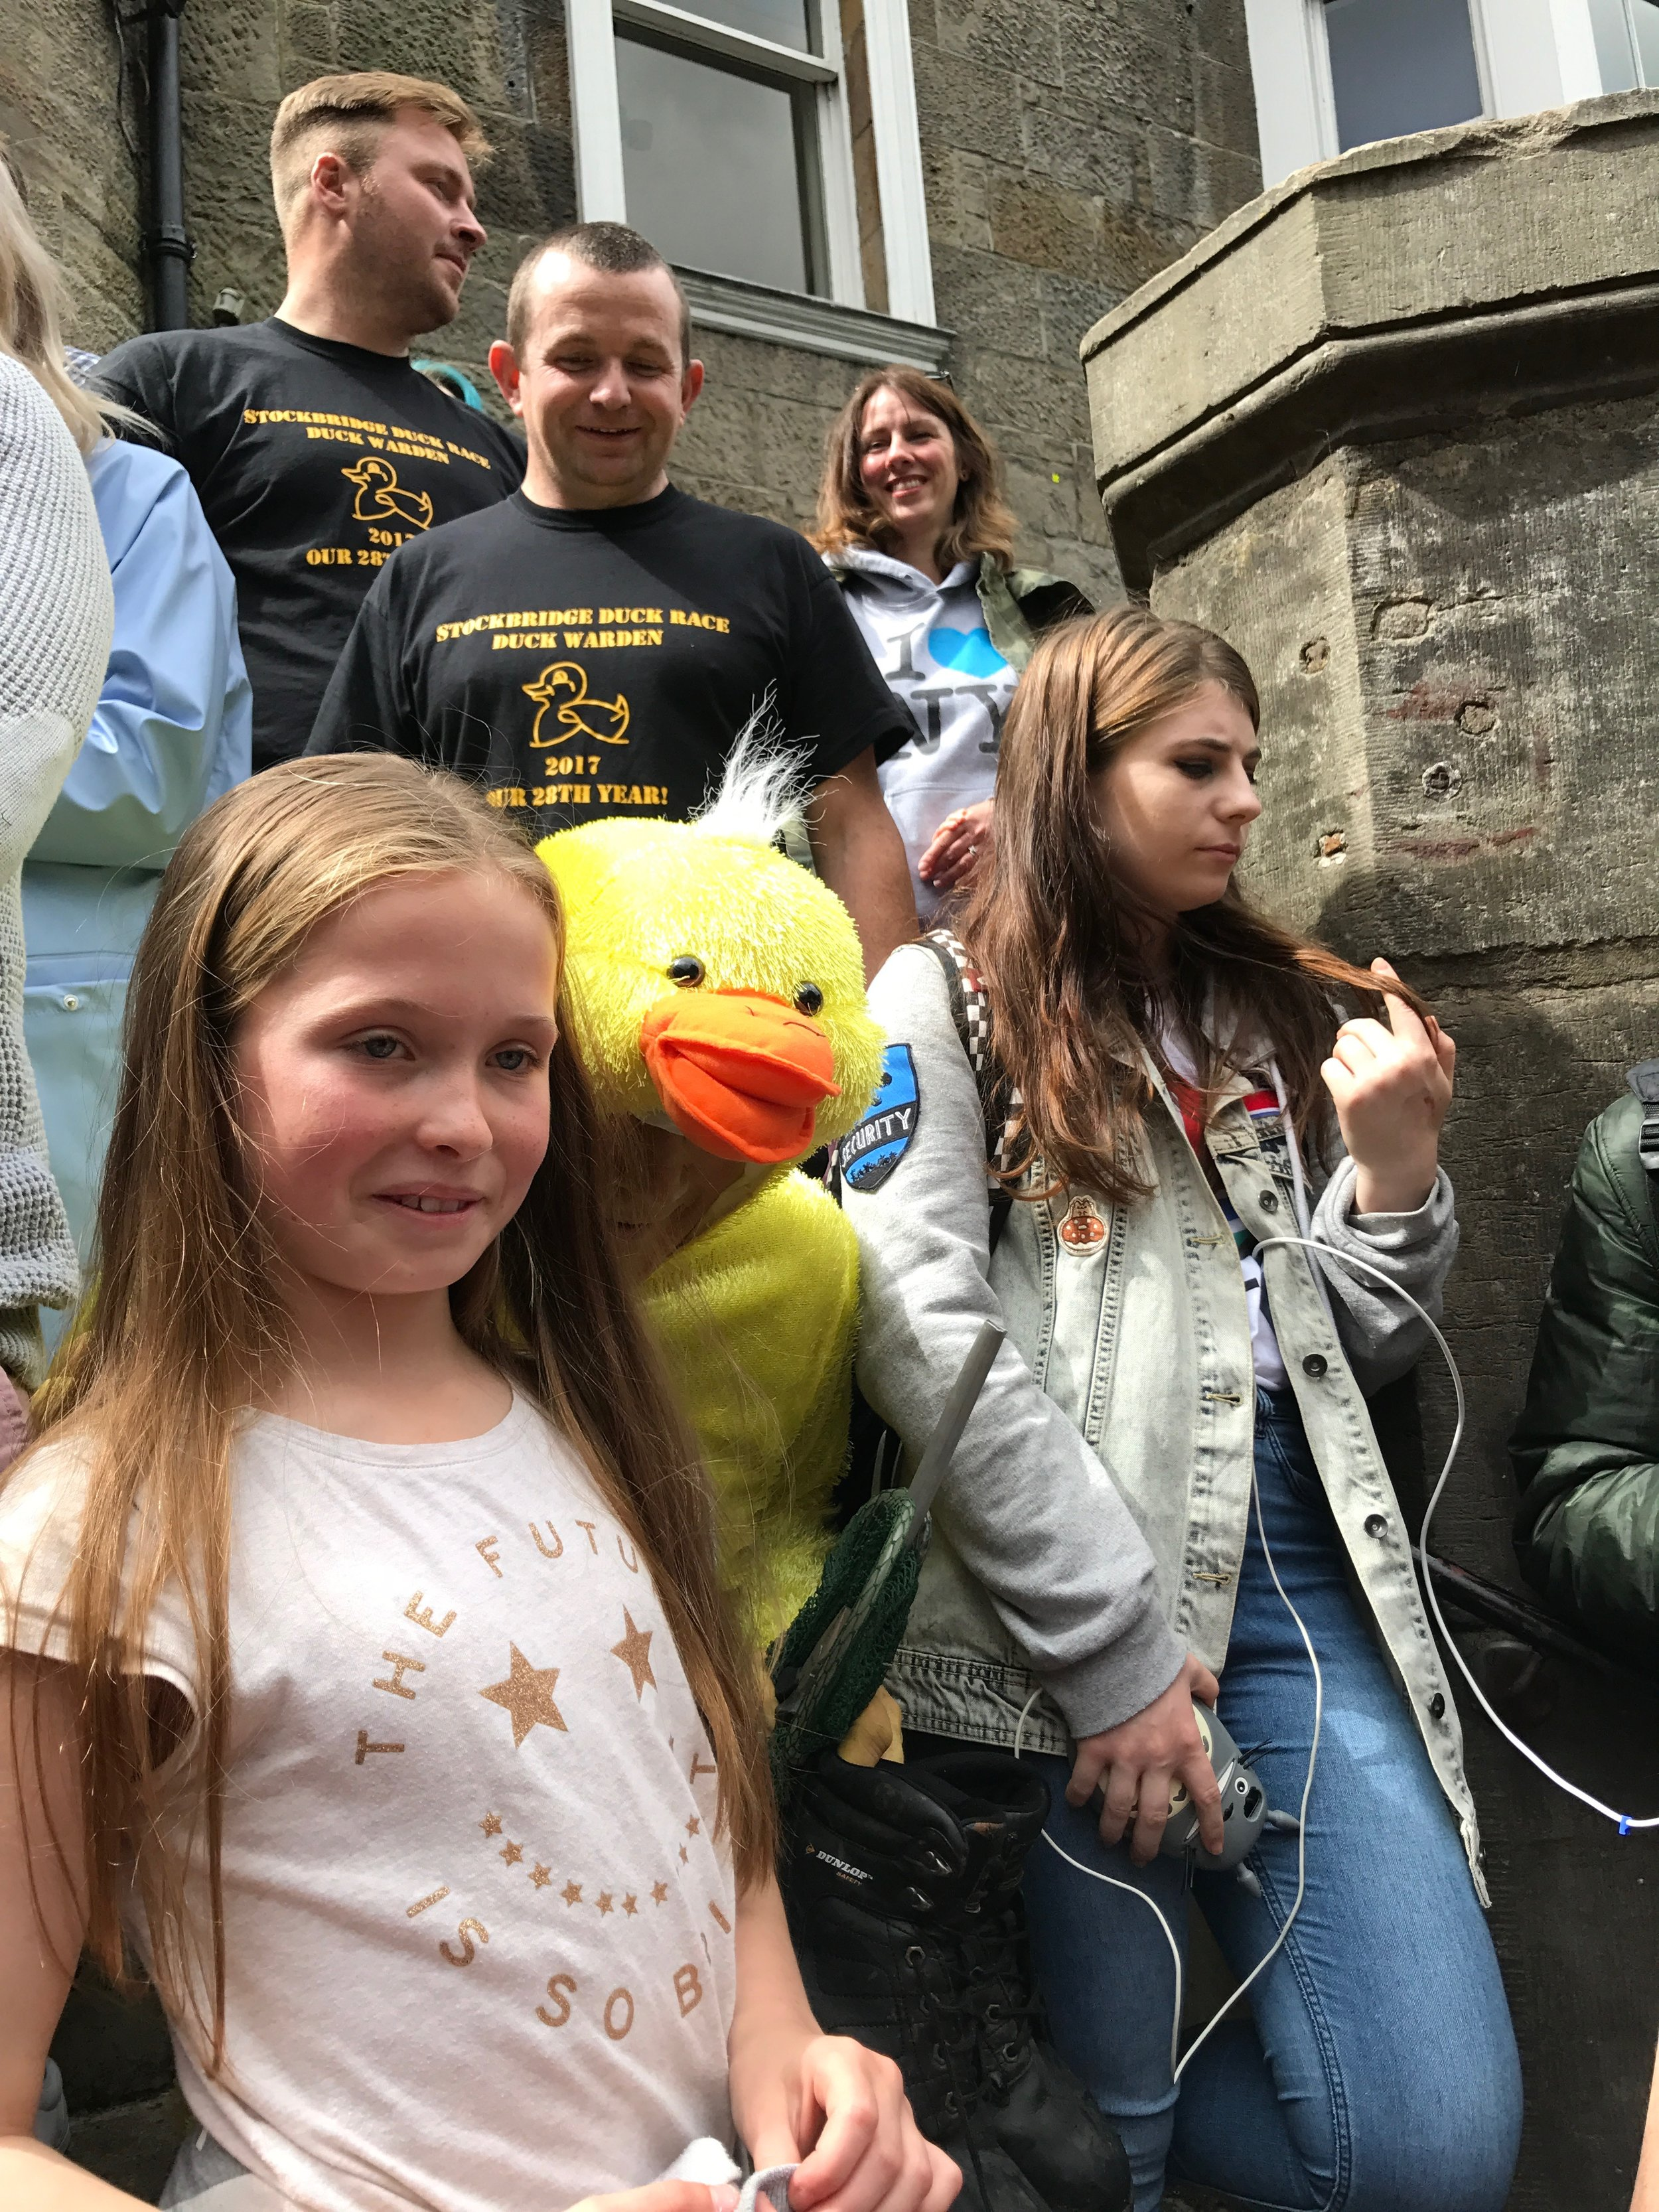 Stockbridge Duck Race 2017